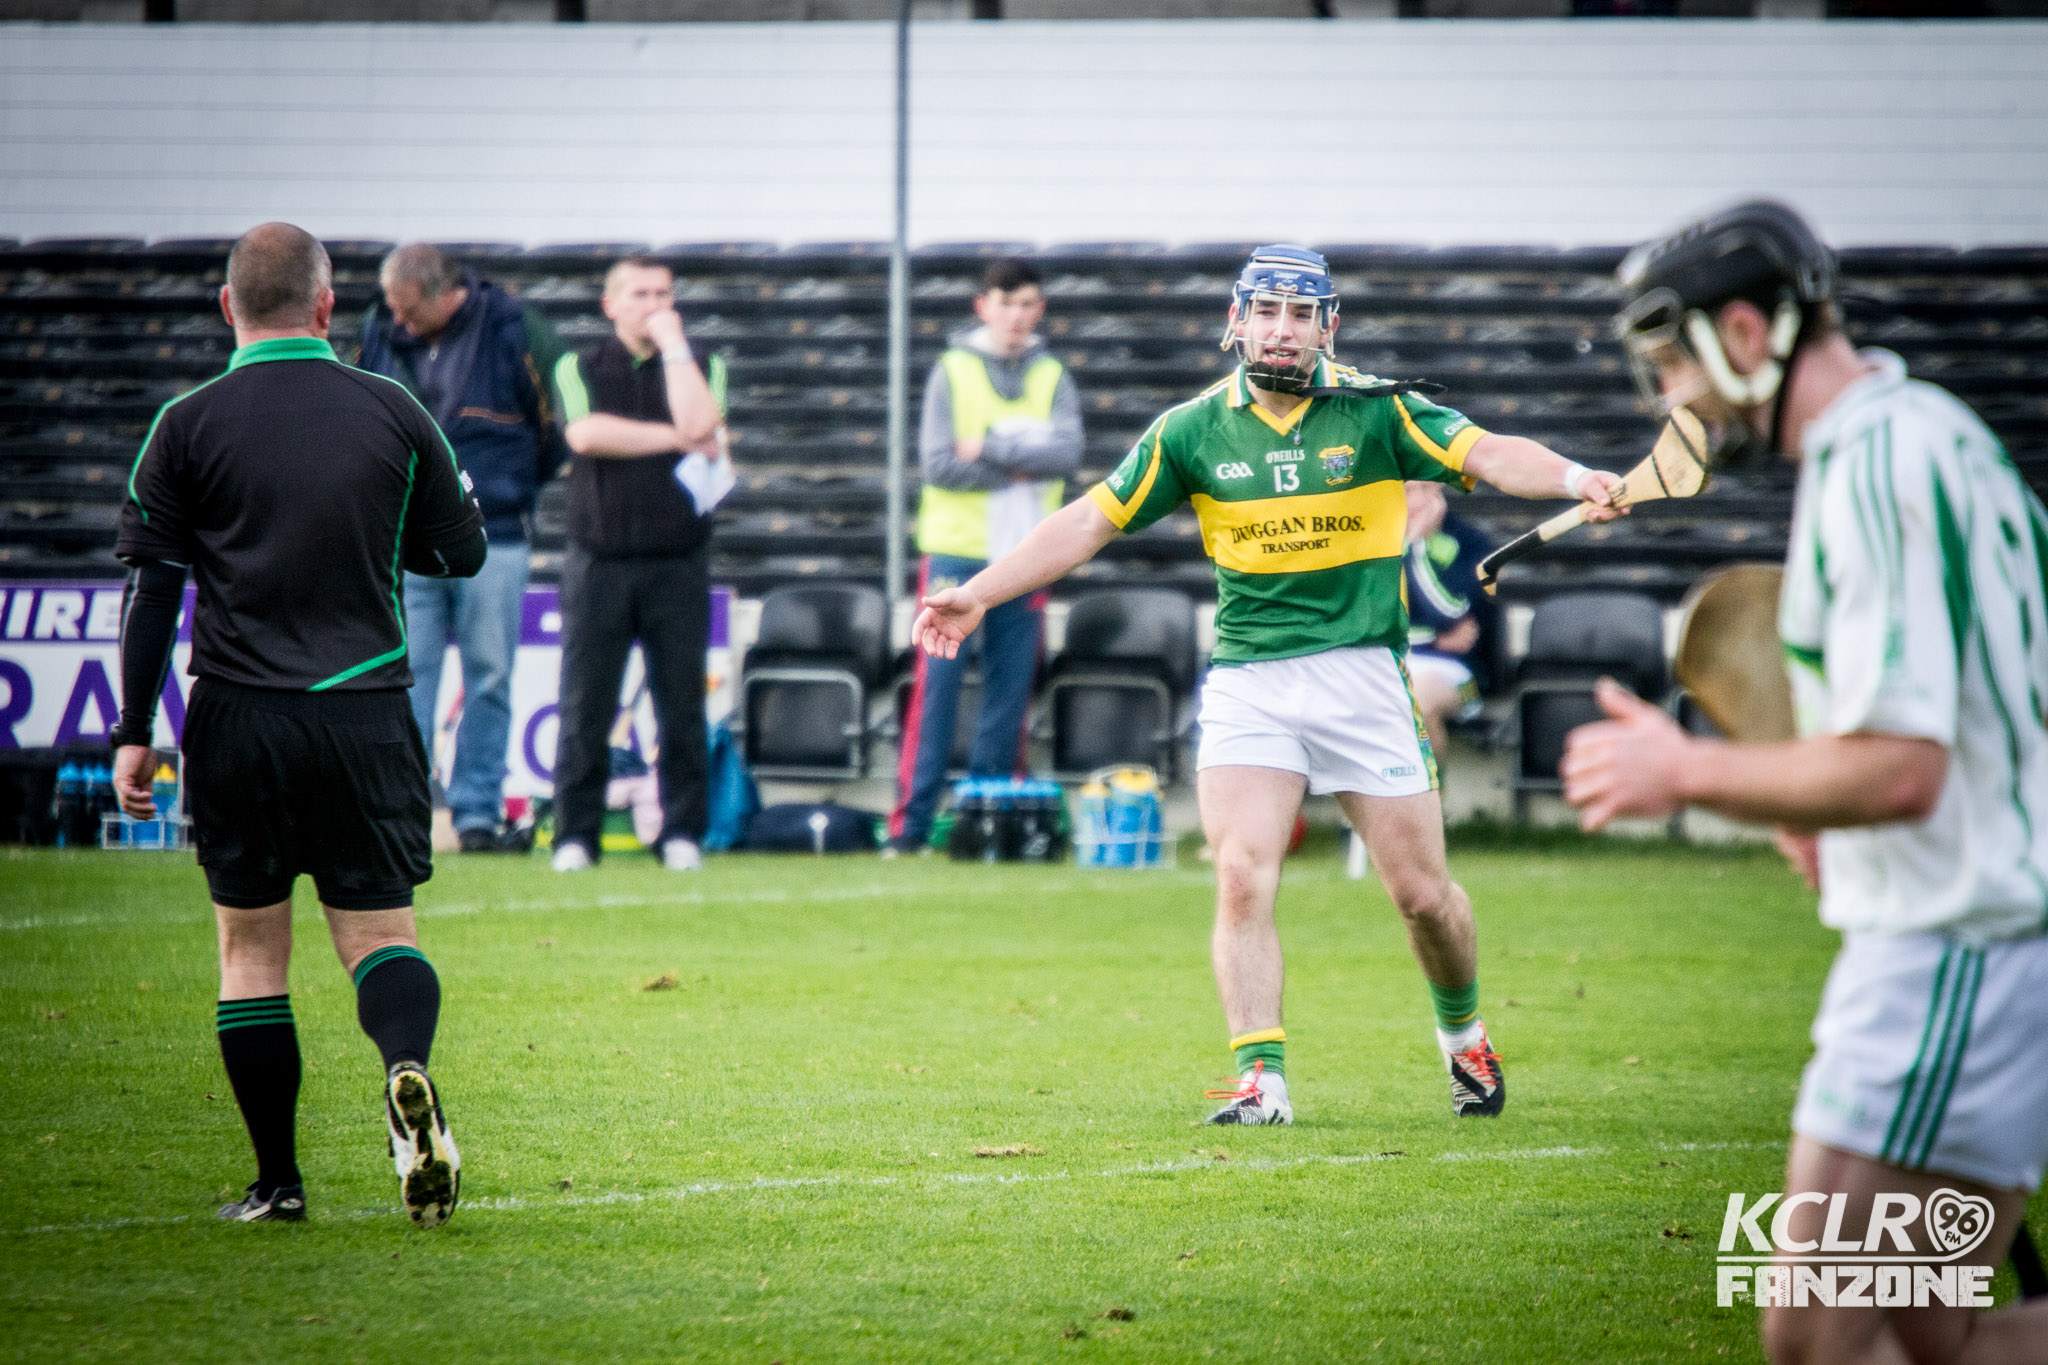 Glenmore captain Ger Aylward remonstrates with referee Eugene Ryan during the 2015 Junior Hurling Championship Final at Nowlan Park, 25 October 2015. Photo: Ken McGuire/KCLR